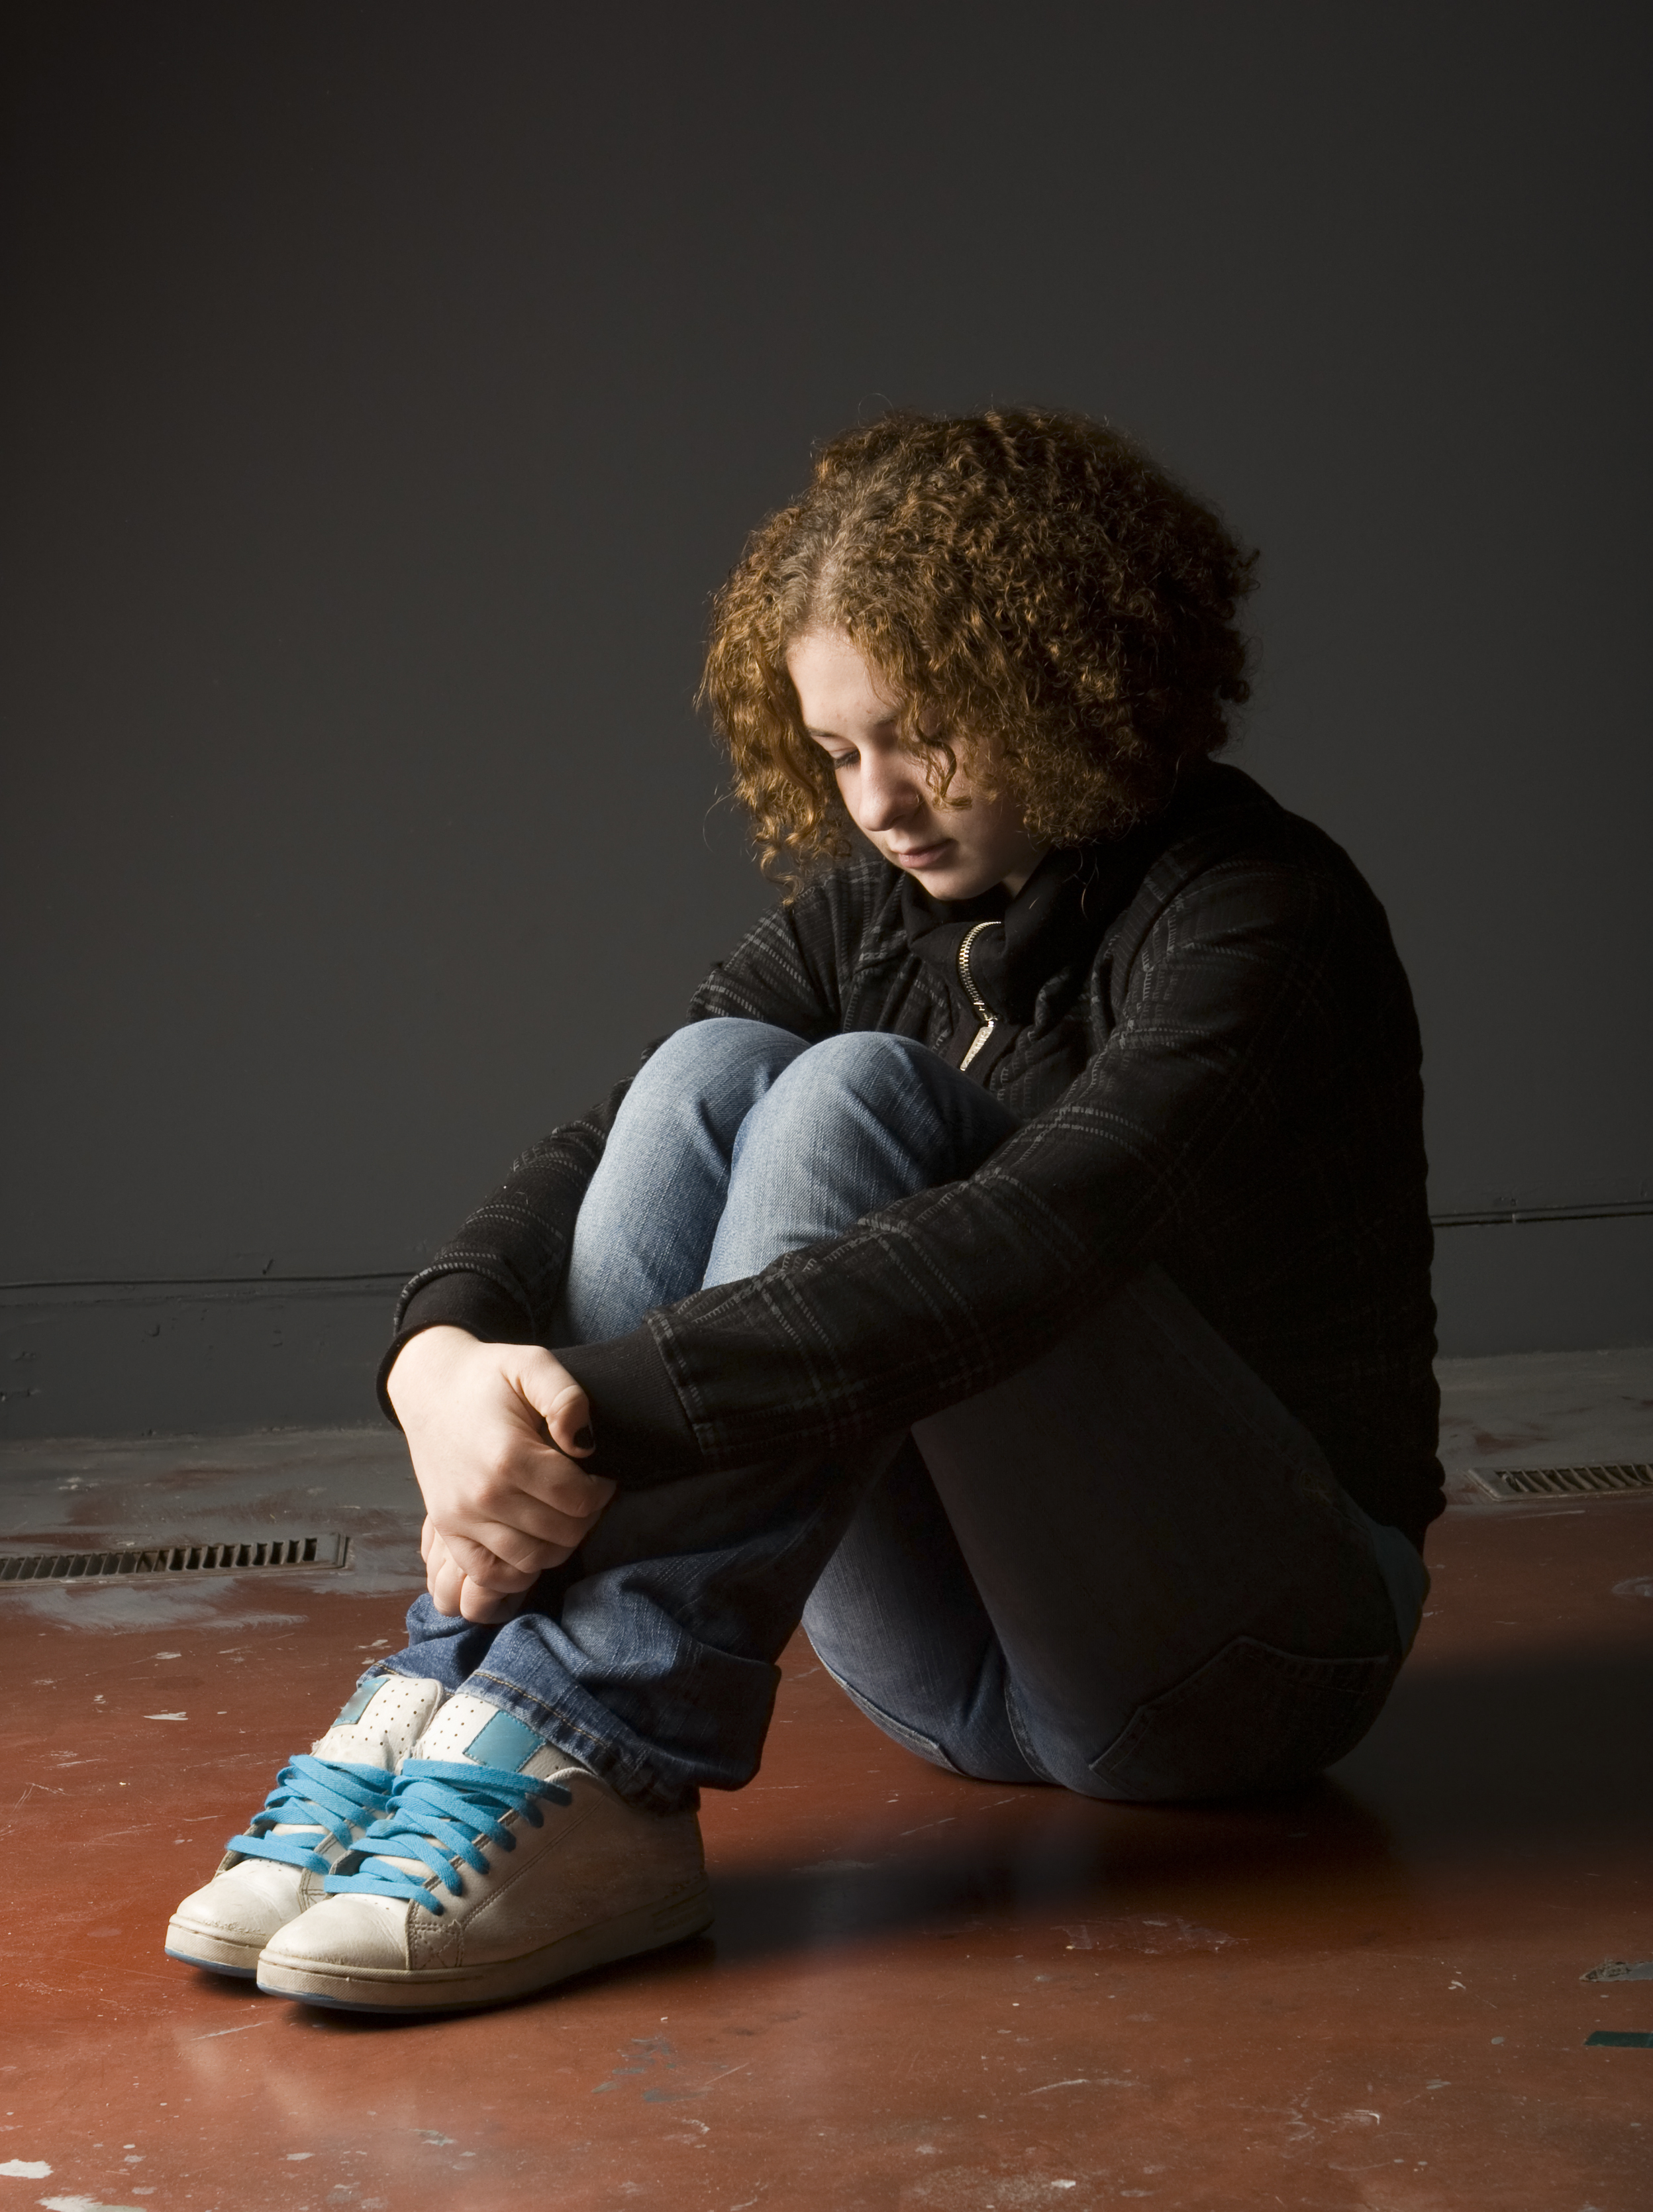 350 million people worldwide suffer from depression.